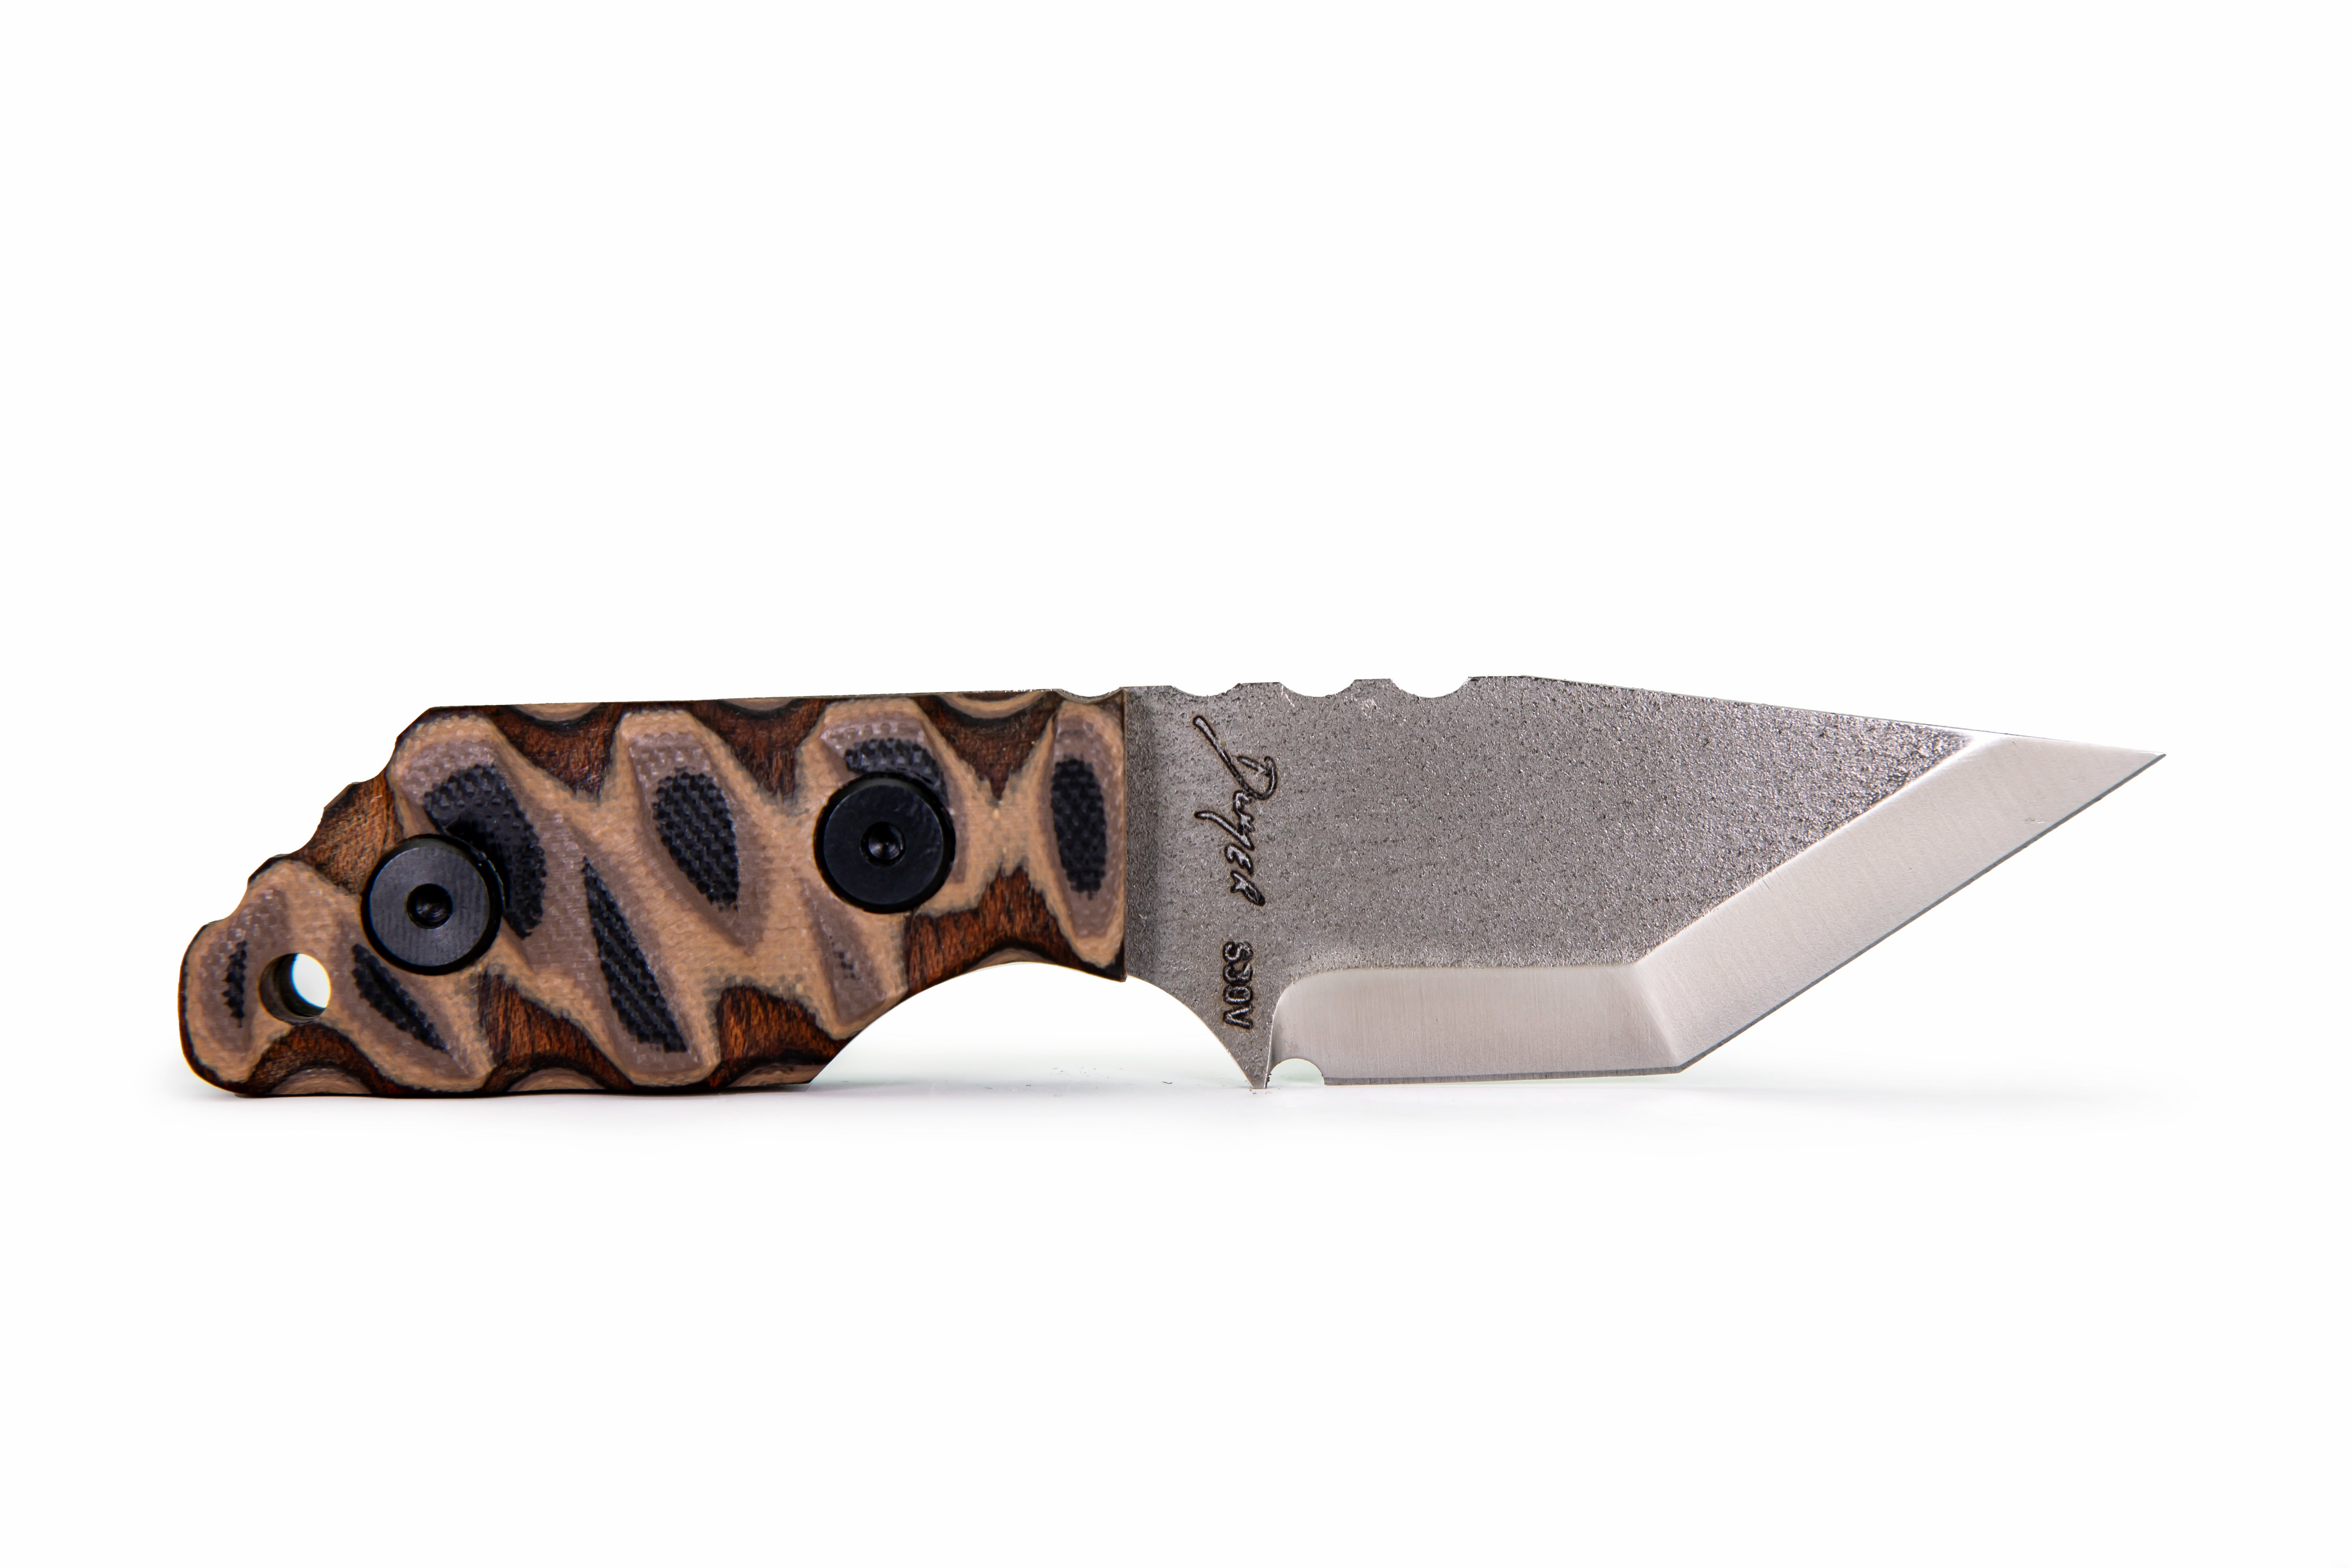 Tommy Knife® TK-C with Layered Wood & G10 Caveman Grip